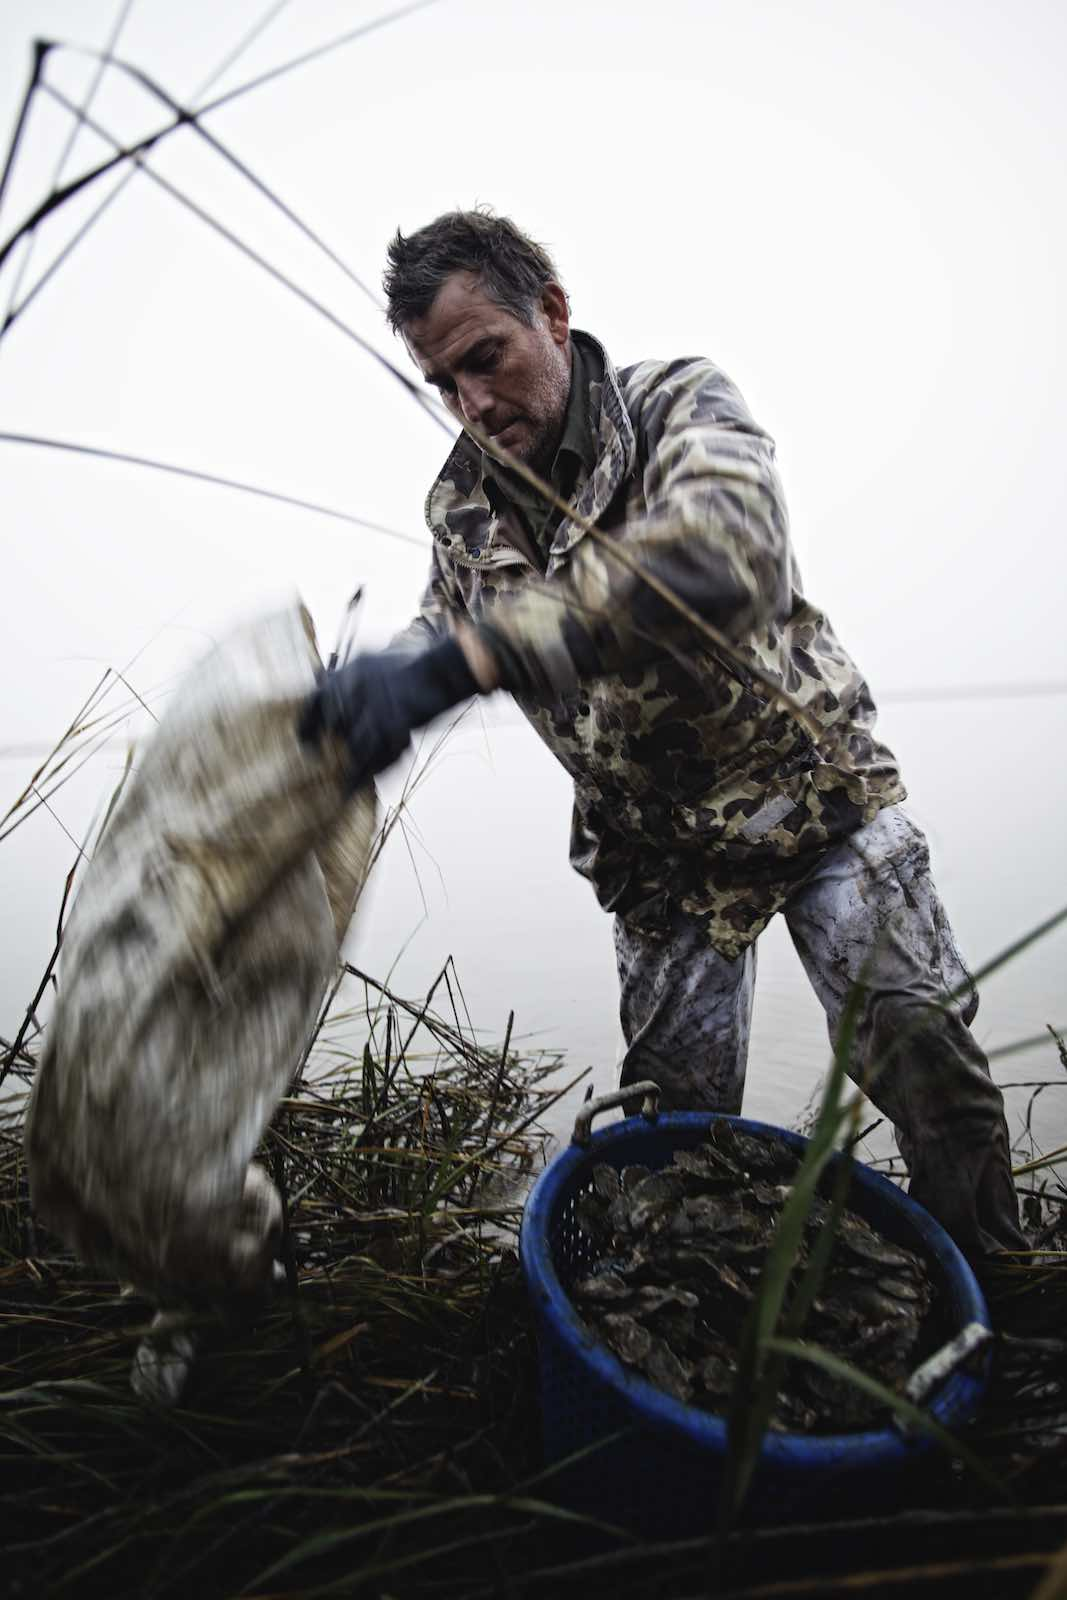 Fisherman and basket of oysters during oyster harvest.